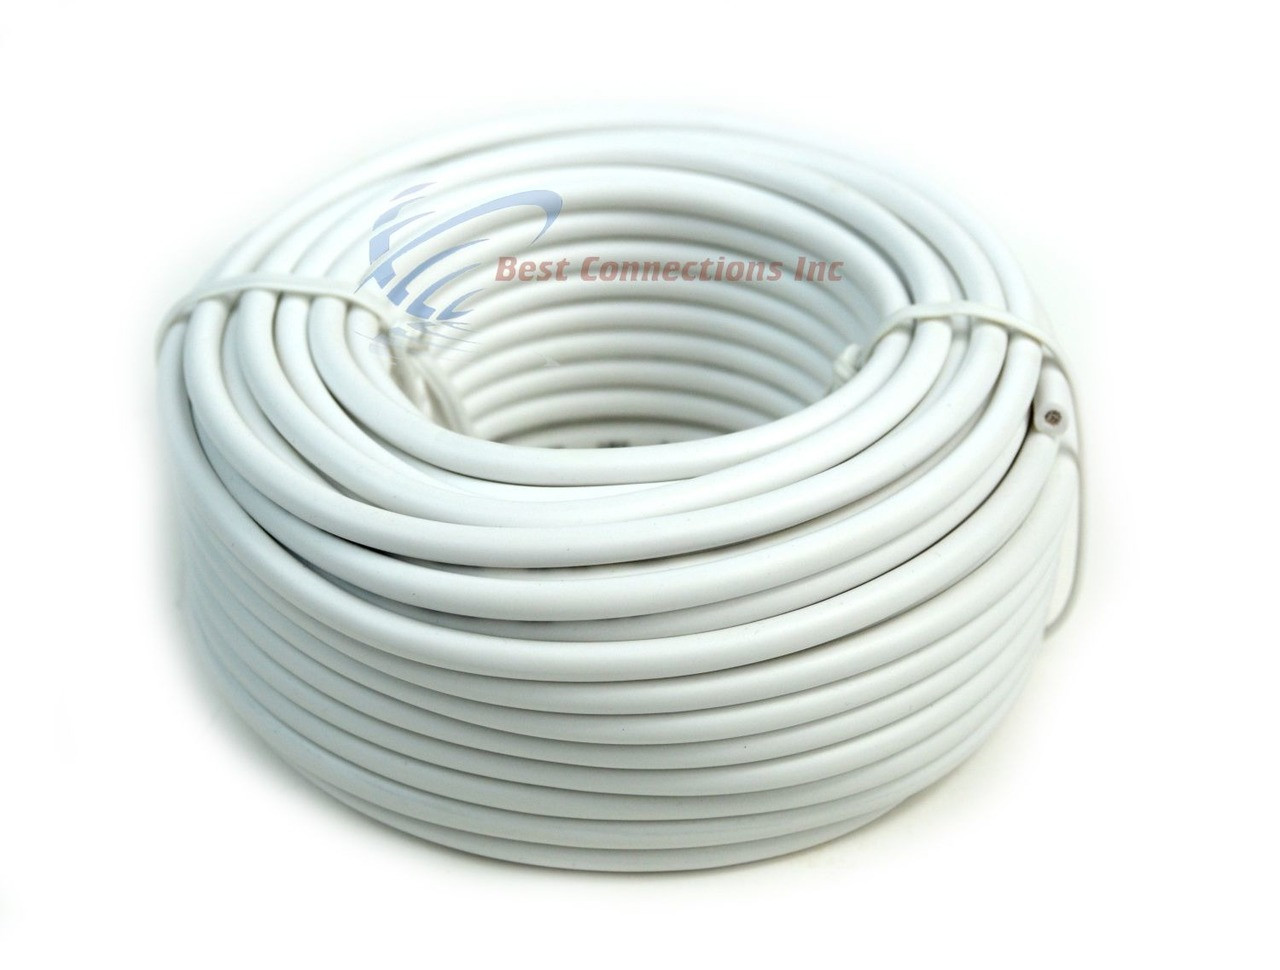 12 gauge 50 feet white audiopipe car audio home remote primary cable wire led [ 1280 x 970 Pixel ]